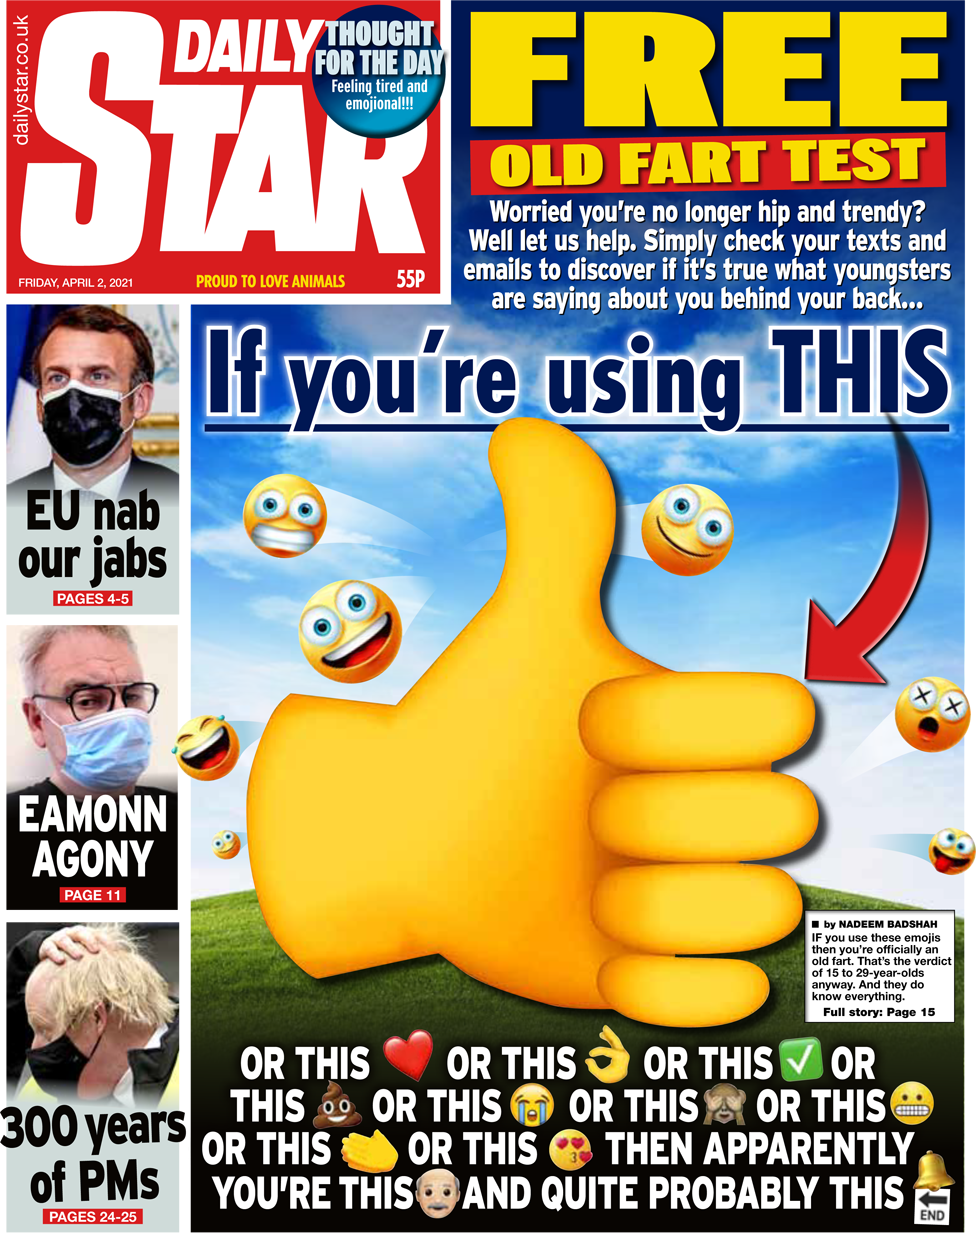 The Daily Star front page 2 April 2021